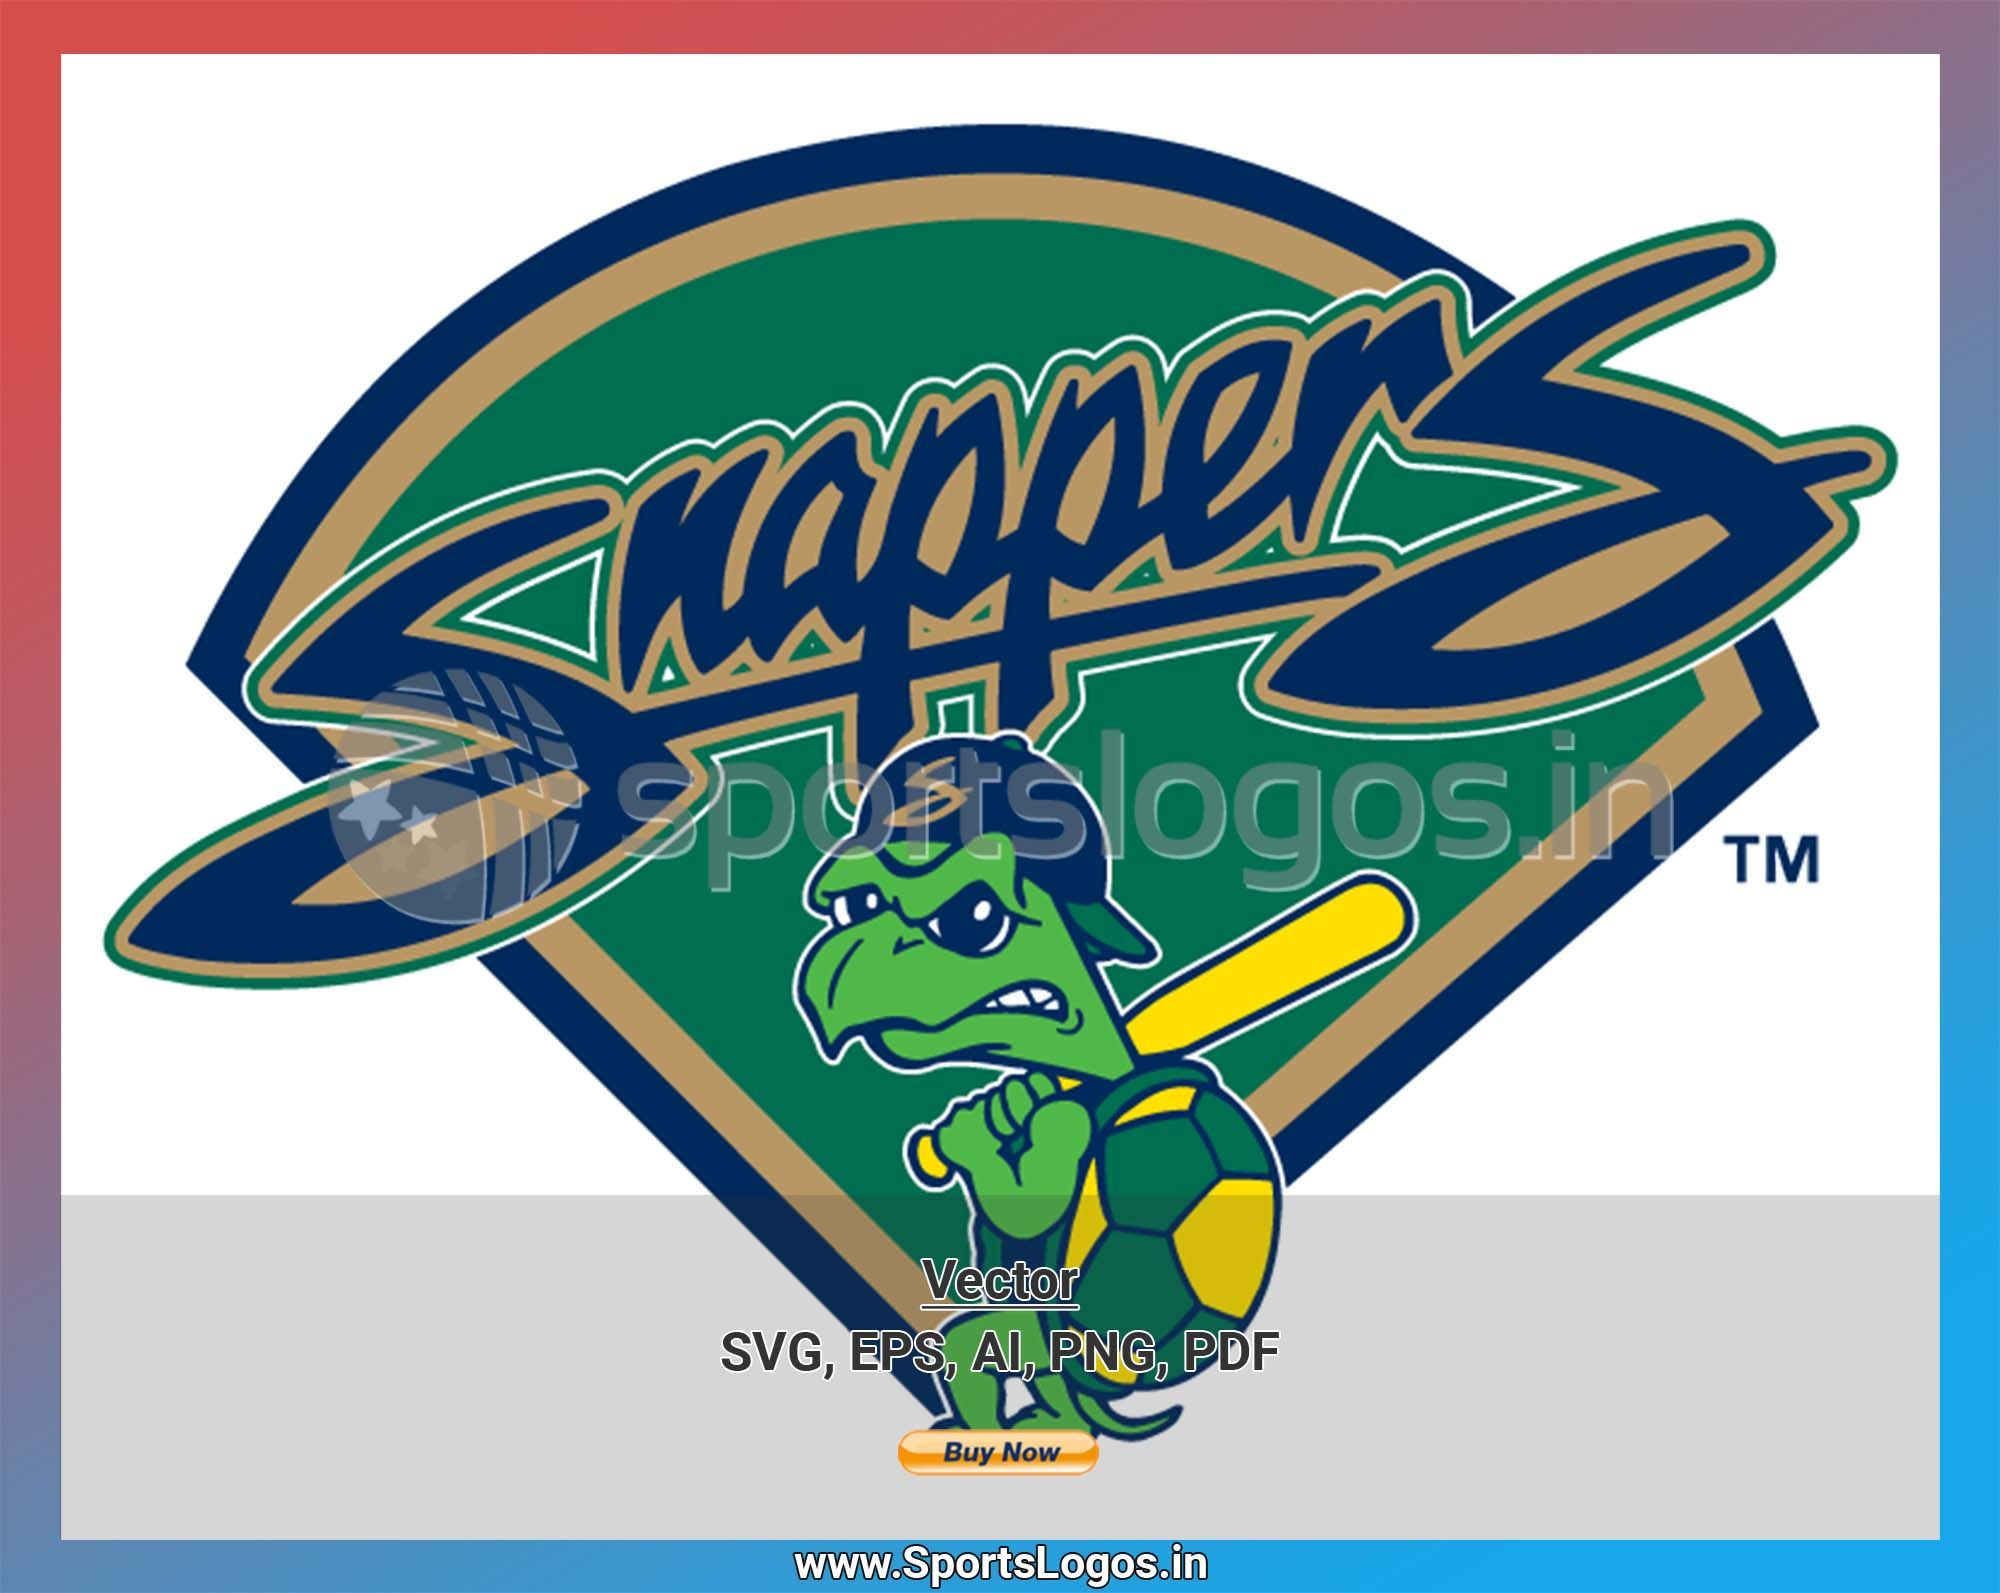 Beloit Snappers Baseball Sports Vector Svg Logo In 5 Formats Spln000352 Sports Logos Embroidery Vector For Nfl Nba Nhl Mlb Milb And More In 2020 Baseball Teams Logo Beloit Minor League Baseball